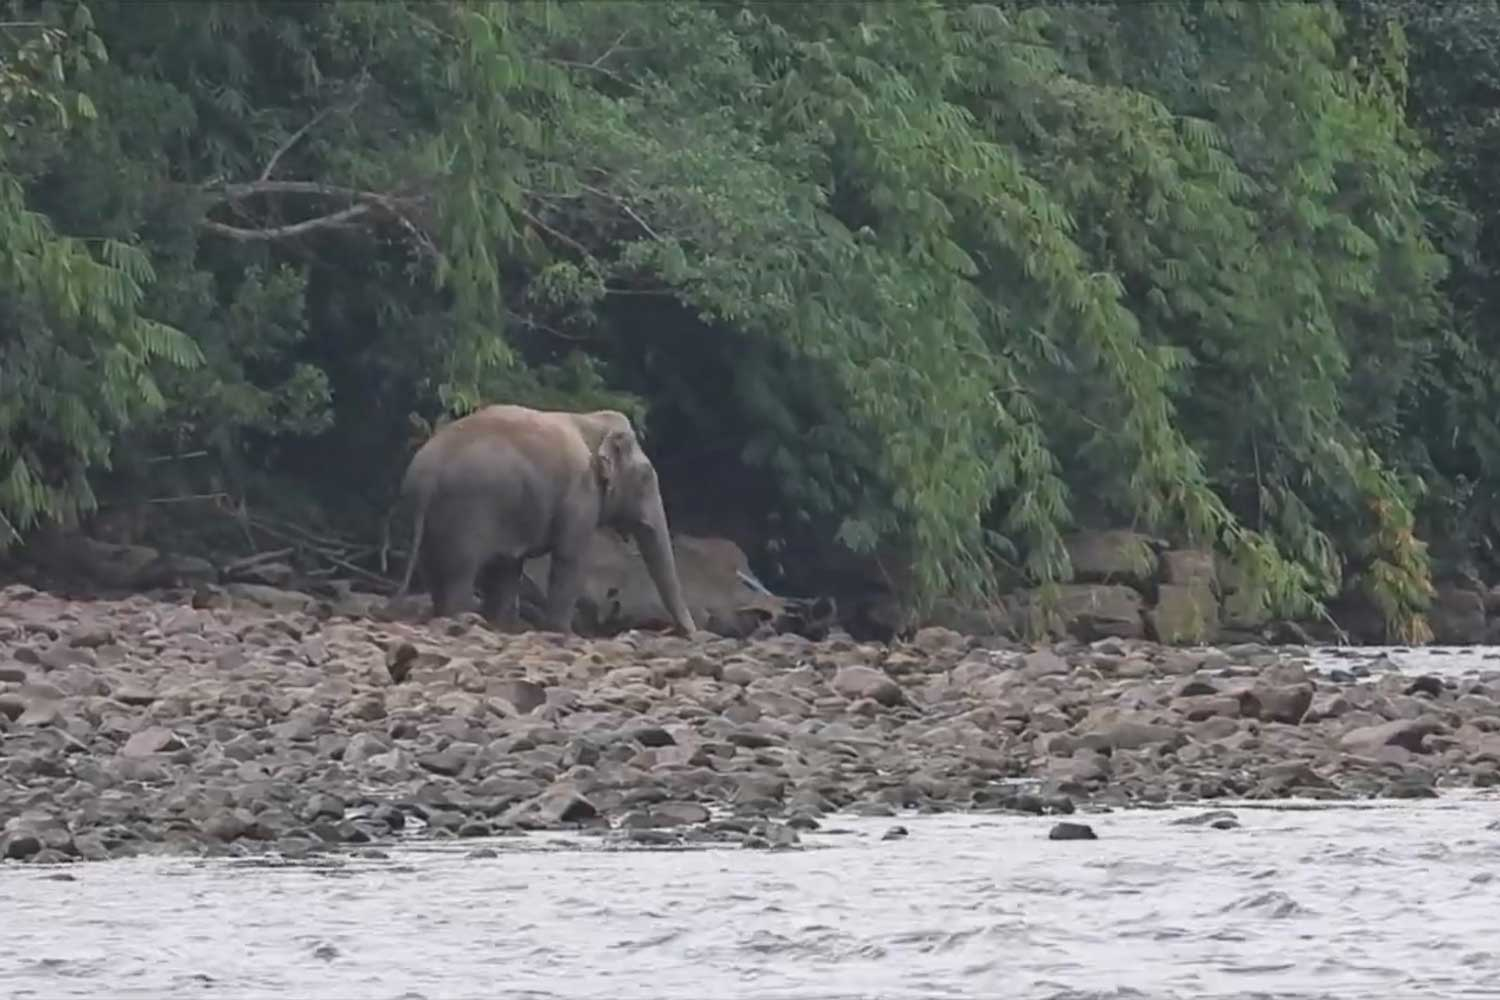 A wild elephant is spotted along the Kwai Noi River in Thong Pha Phum district, Kanchanaburi. (Photo supplied via Piyarat Chongcharoen)